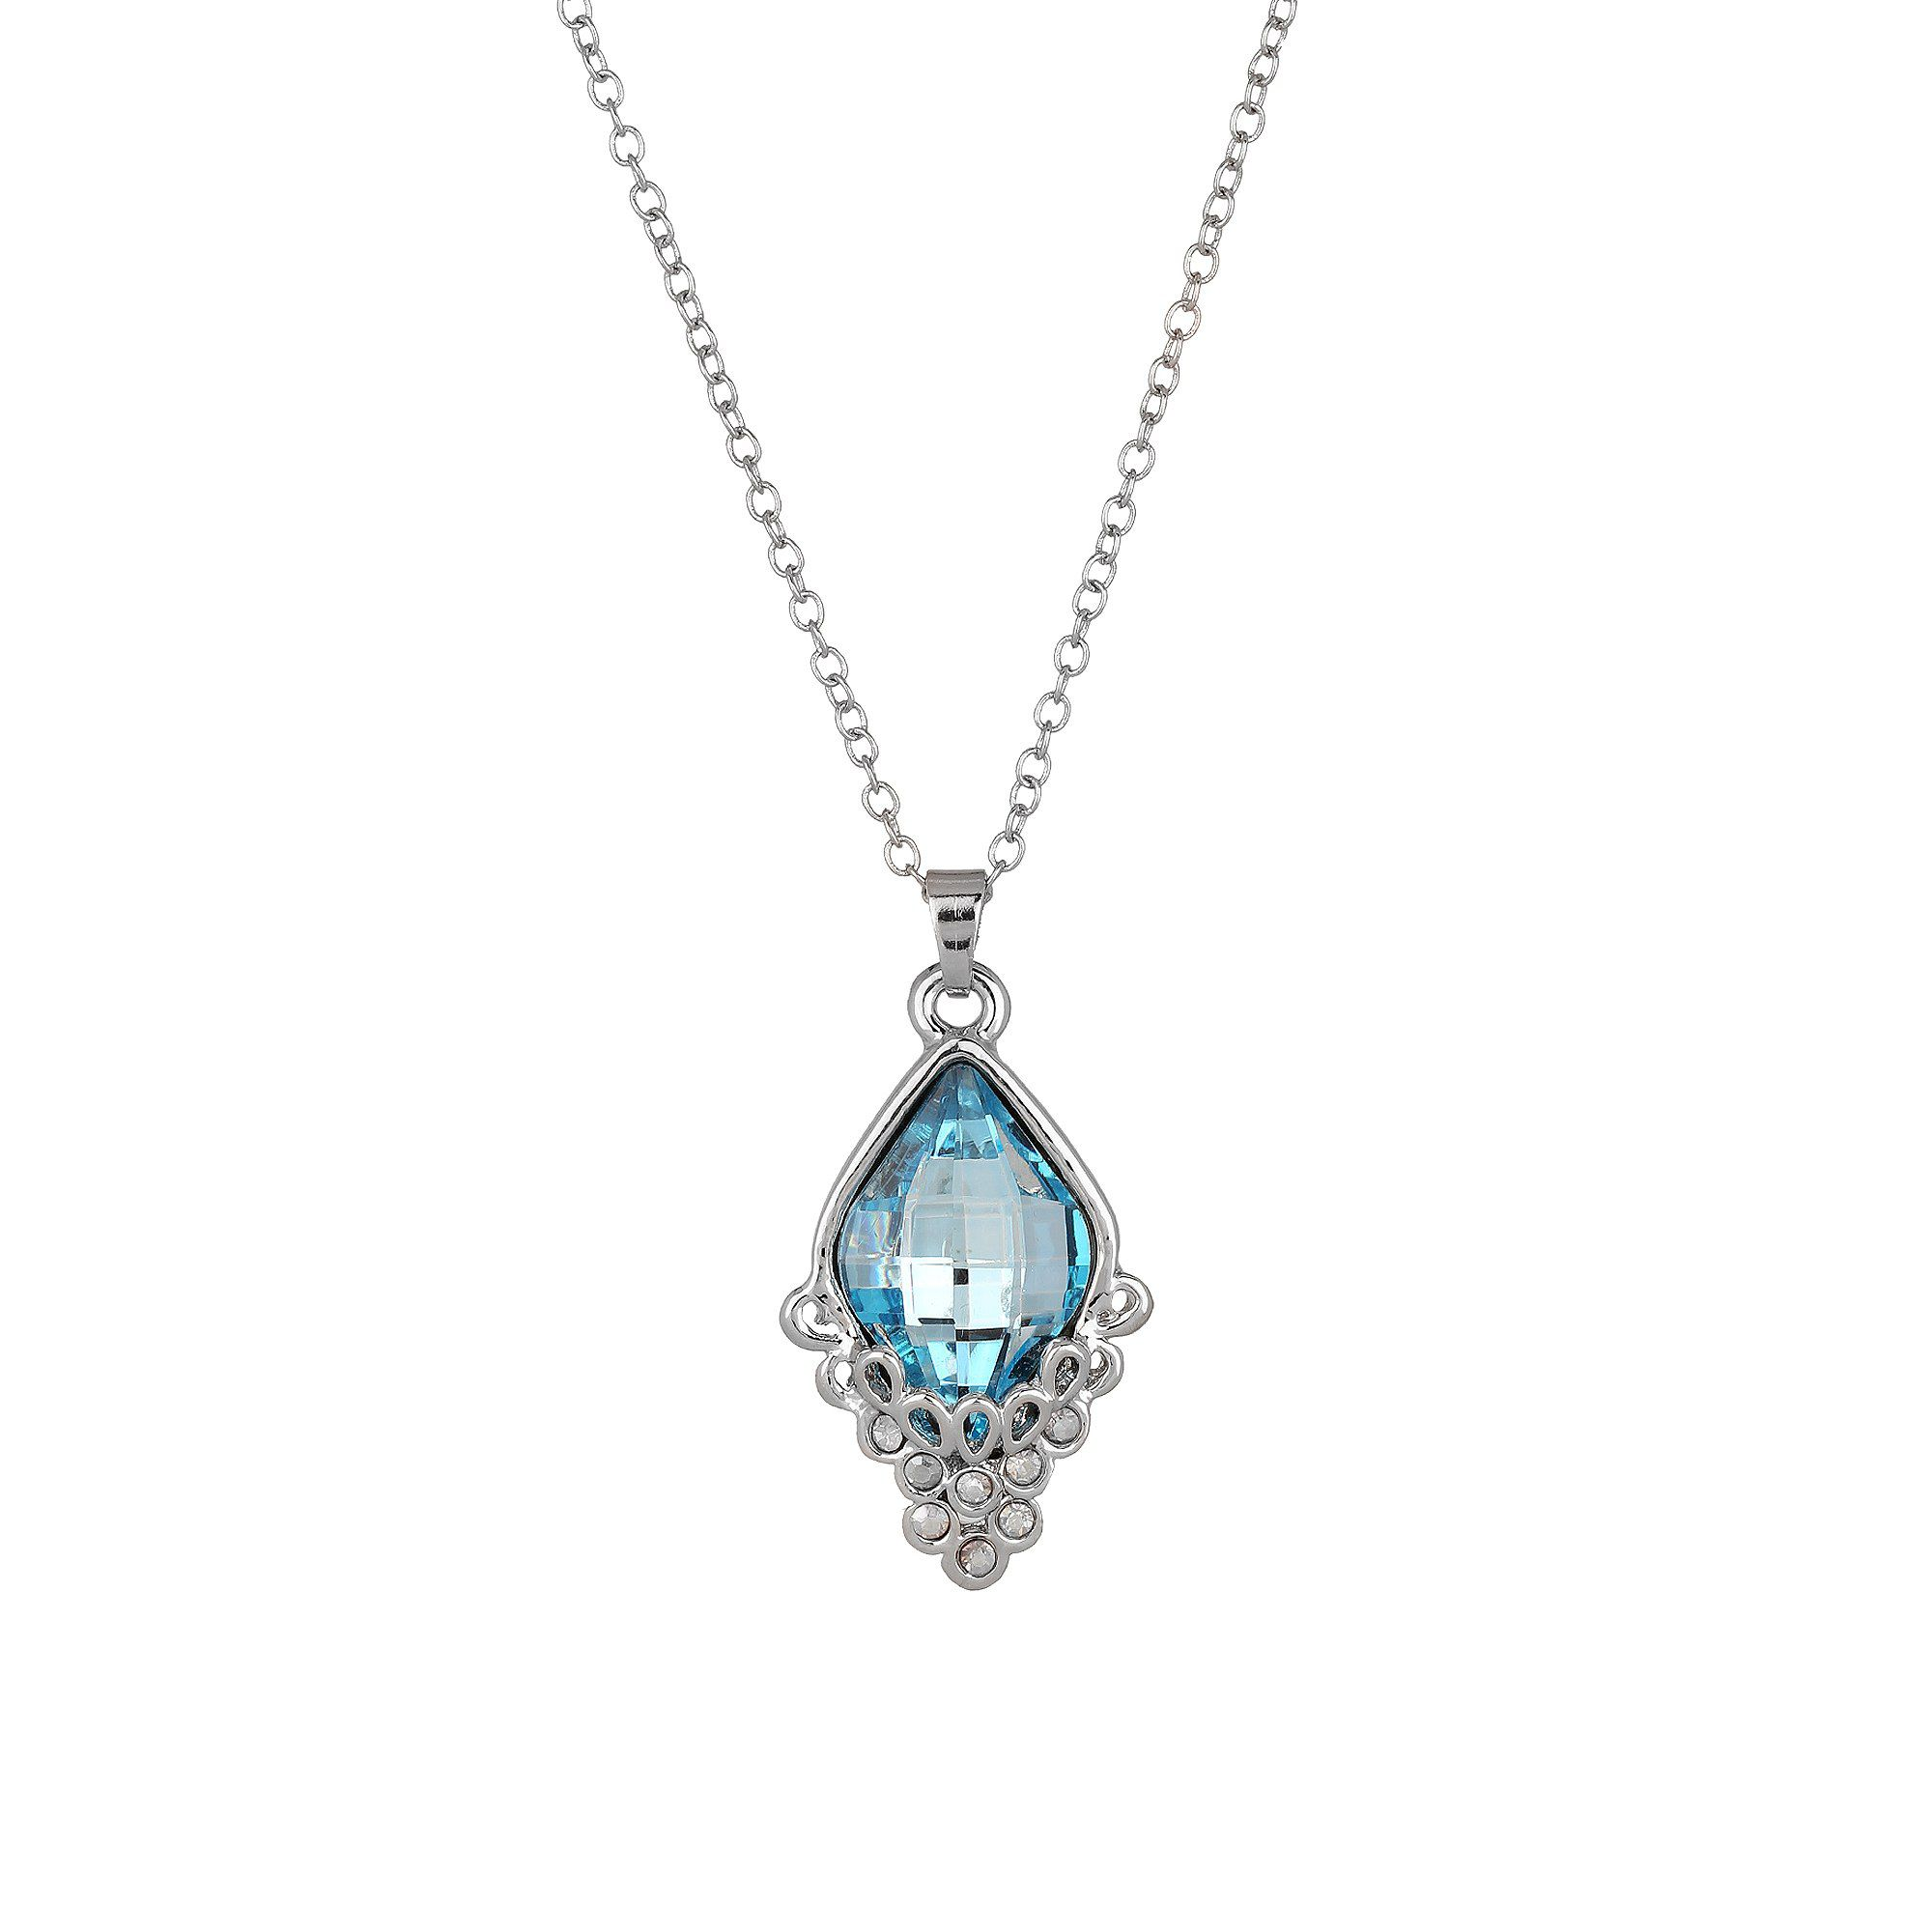 Nirosha Silver Plated Austrian Crystal Necklace for Women